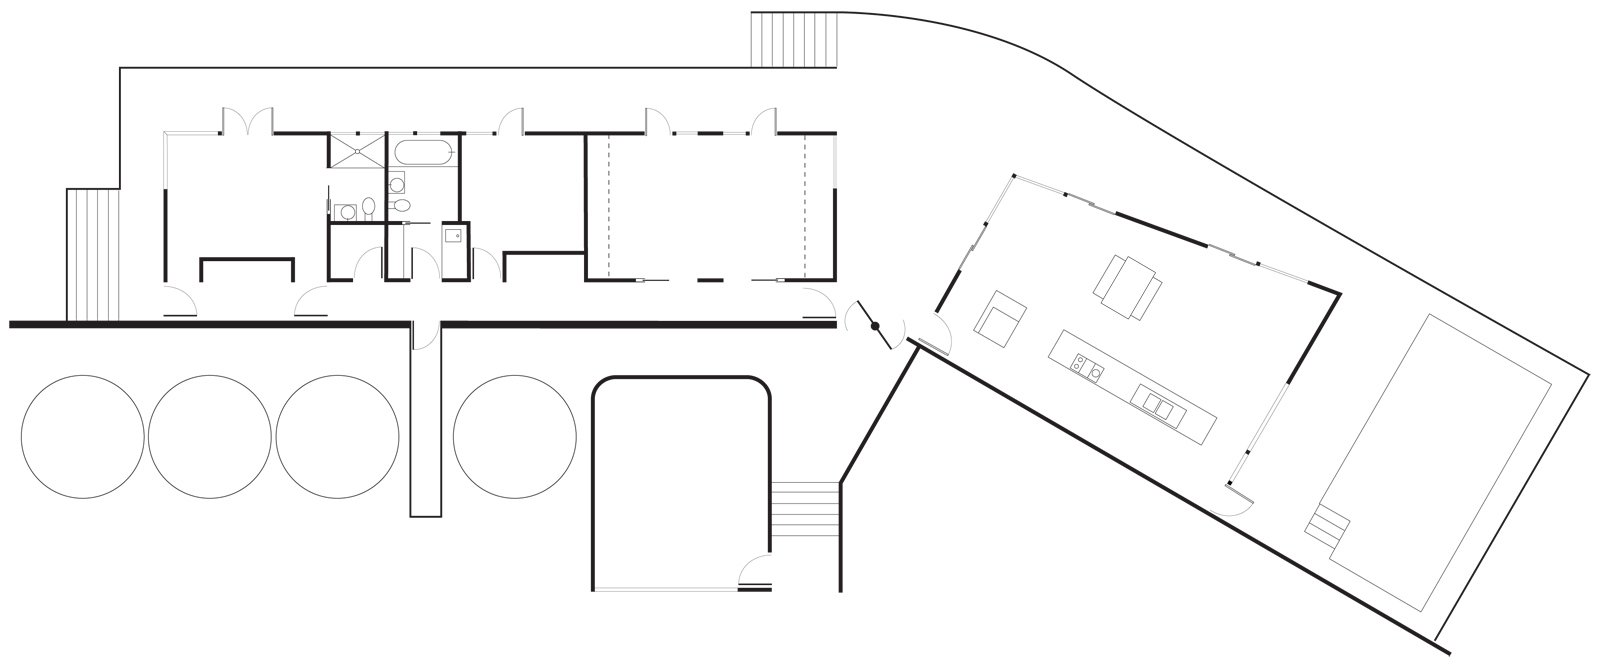 Medland residence floor plan.  Photo 4 of 5 in Winds of Change